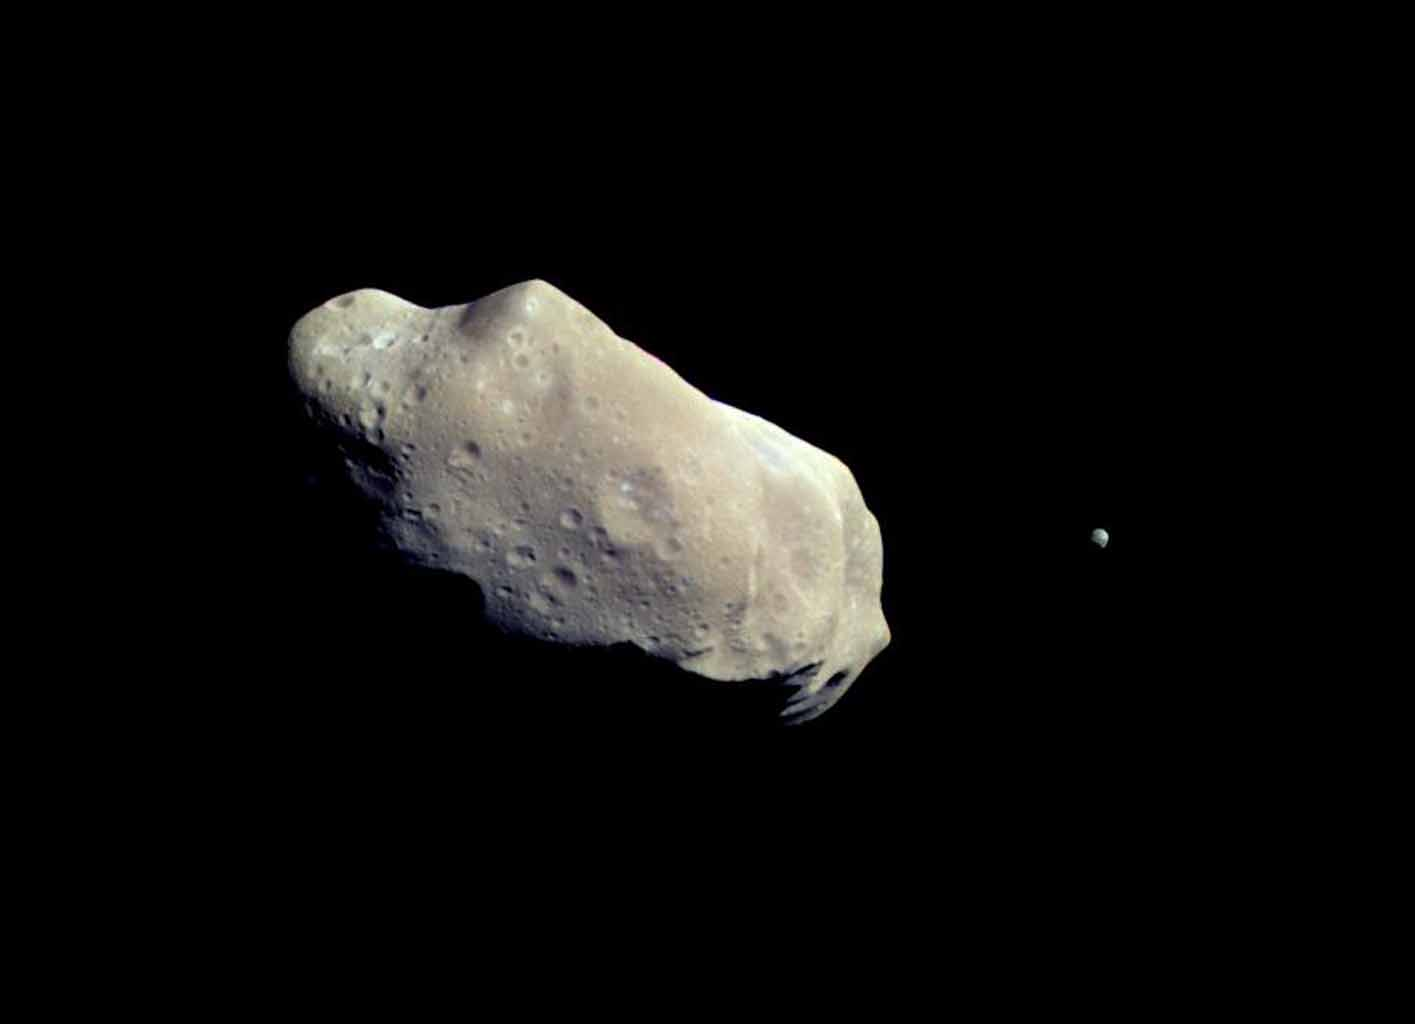 This color picture is made from images taken by the imaging system on NASA's Galileo spacecraft about 14 minutes before its closest approach to asteroid 243 Ida on August 28, 1993.